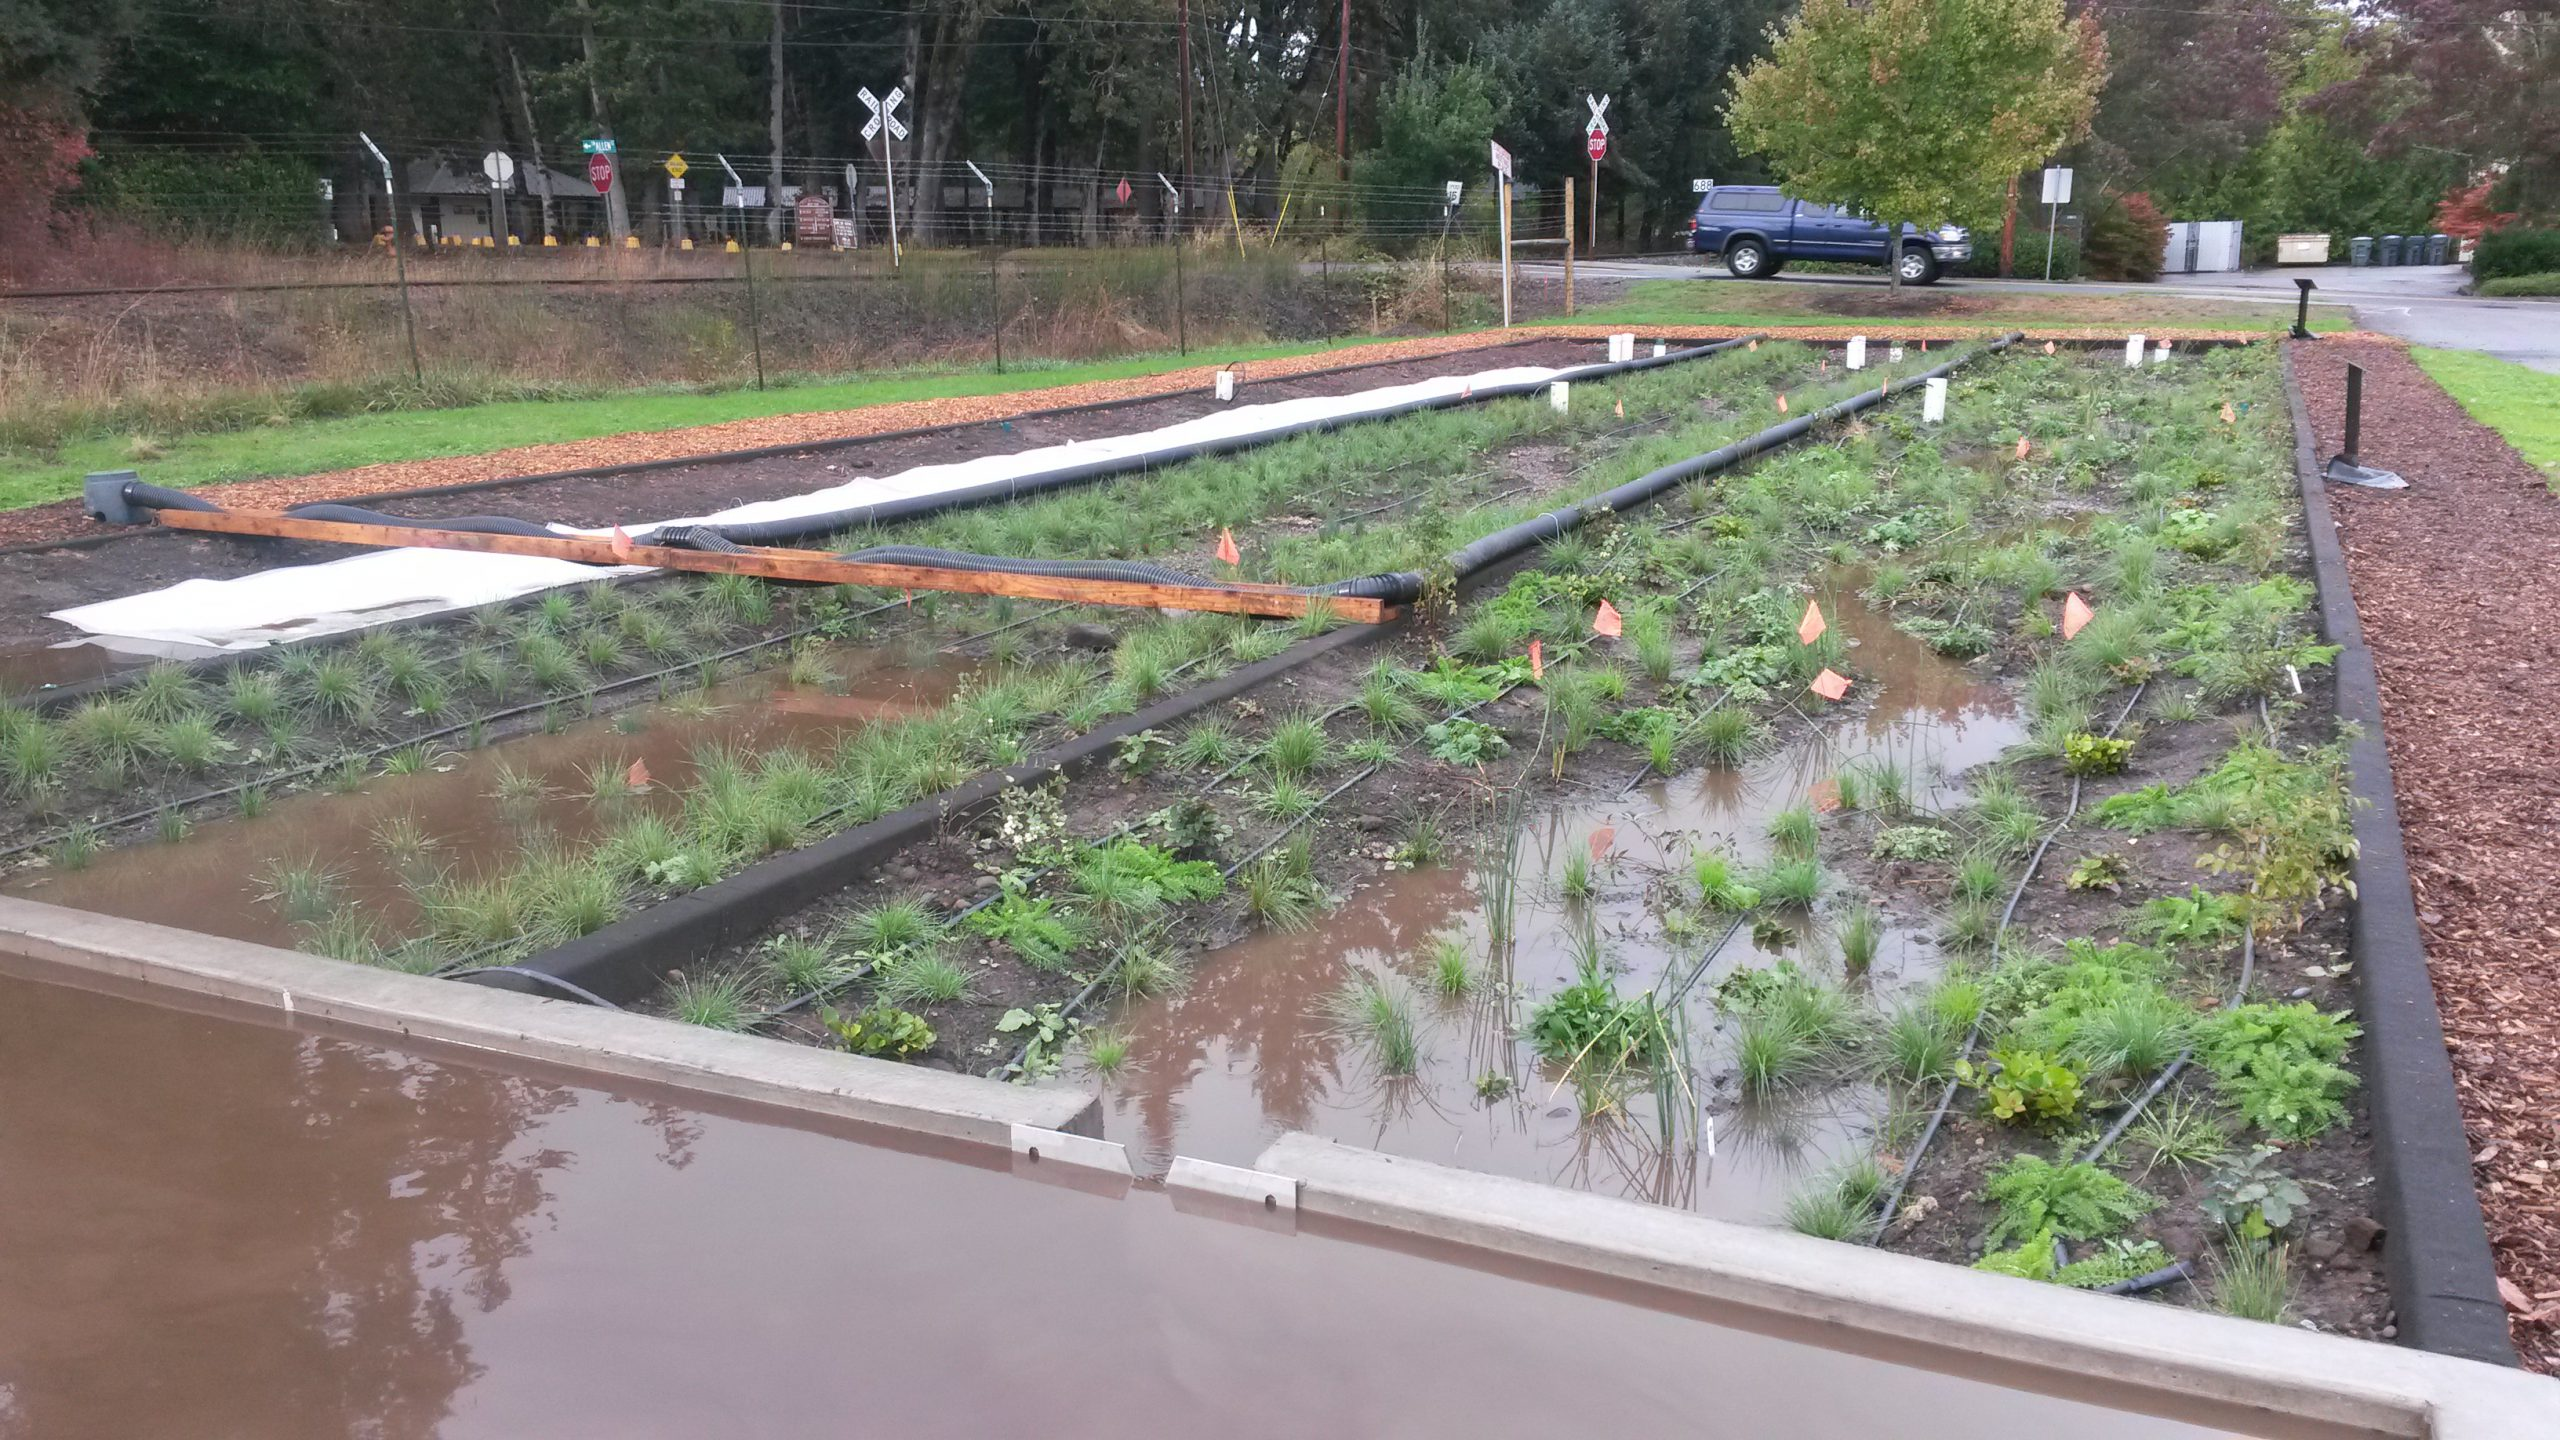 A collaborative project between OSU and Benton County, the construction of the stormwater research facility was completed in early October of 2014.